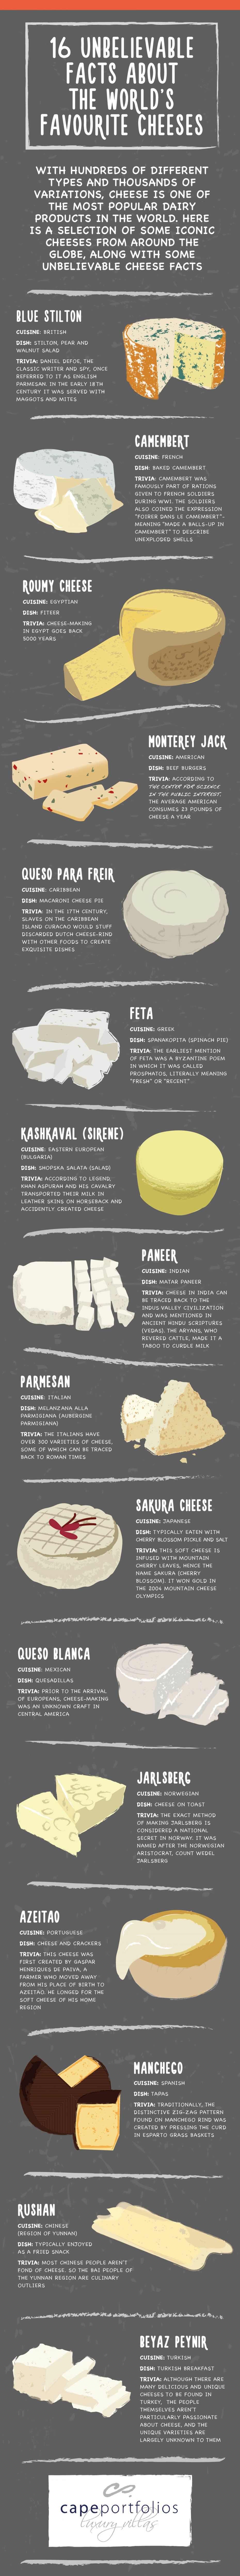 16 Unbelievable Facts About the World's Favorite Cheese